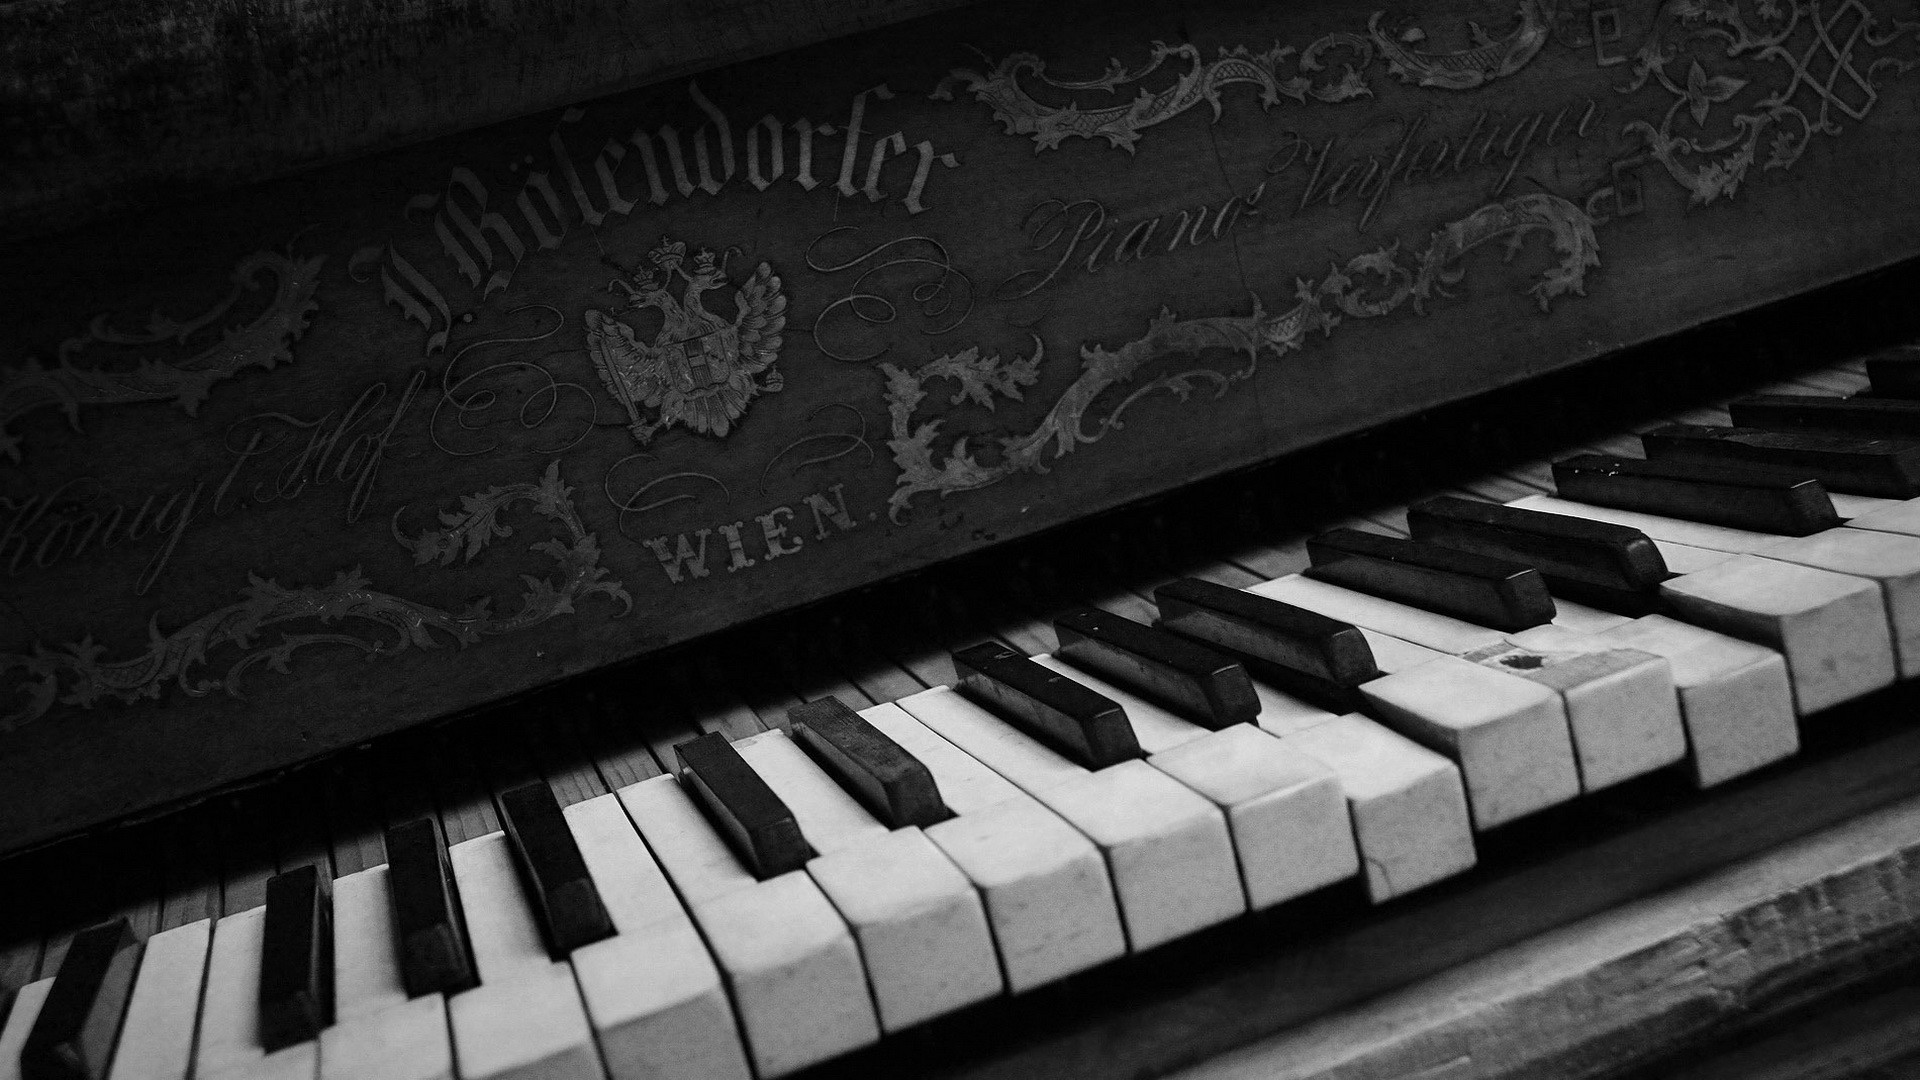 Piano Wallpapers 1